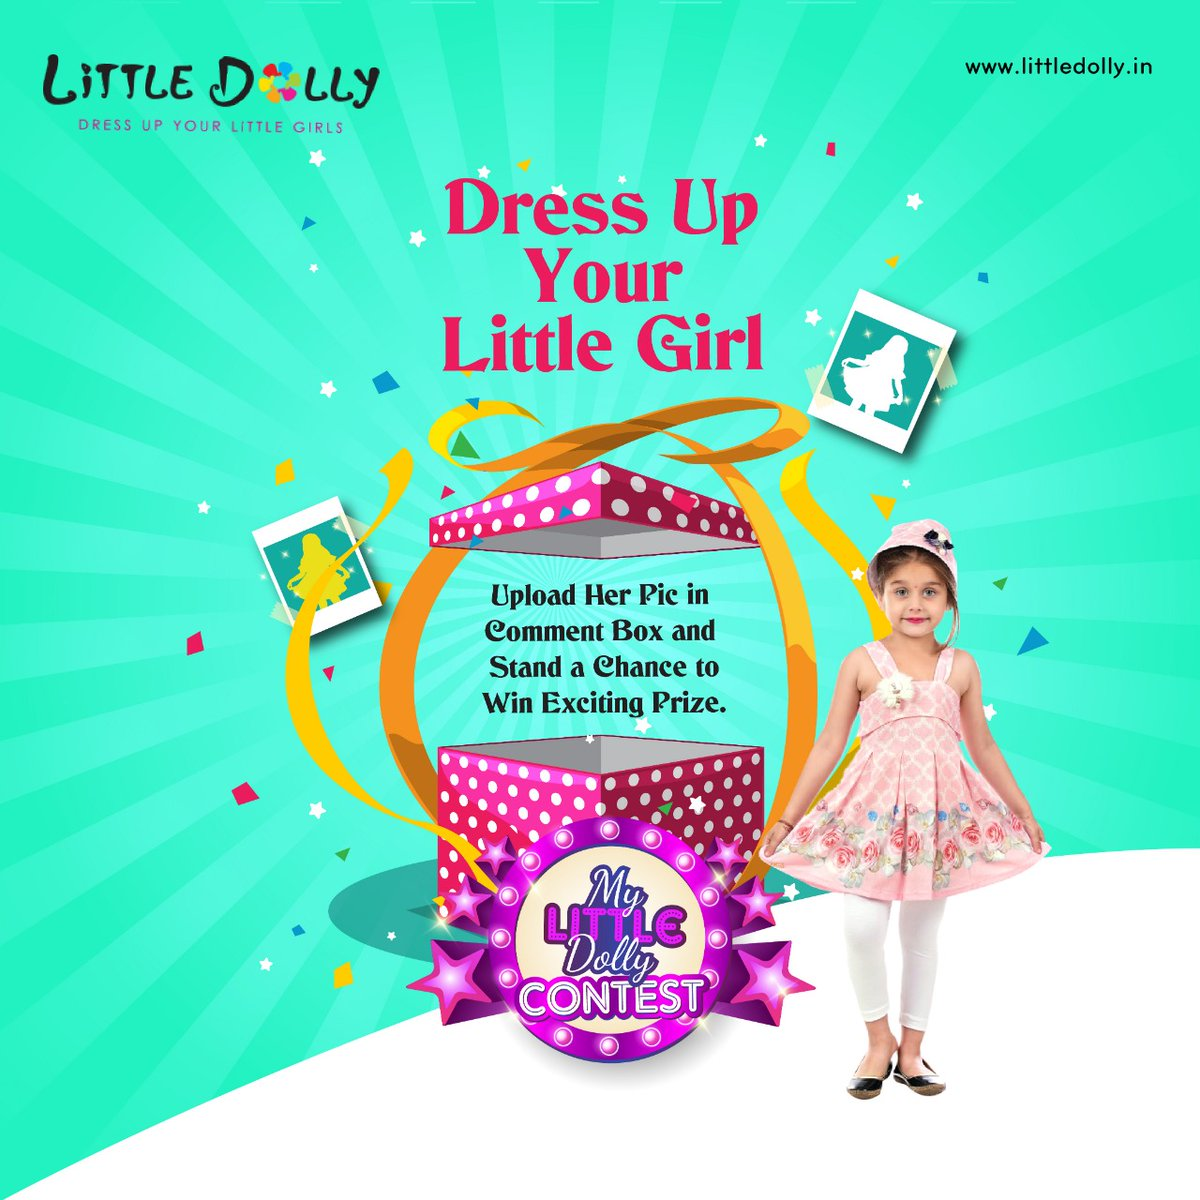 My Little Dolly Contest Dress Up Your Little Girl, Upload Her Pic in Comment Box and Stand a Chance to Win Exciting Prize. *For 1-5 year old girl child  *Follow us on FB, Insta & Twitter *Last date 5 Mar 2020 #littledolly #contest #contestalert #girlsfashion #girlswear #kidswear